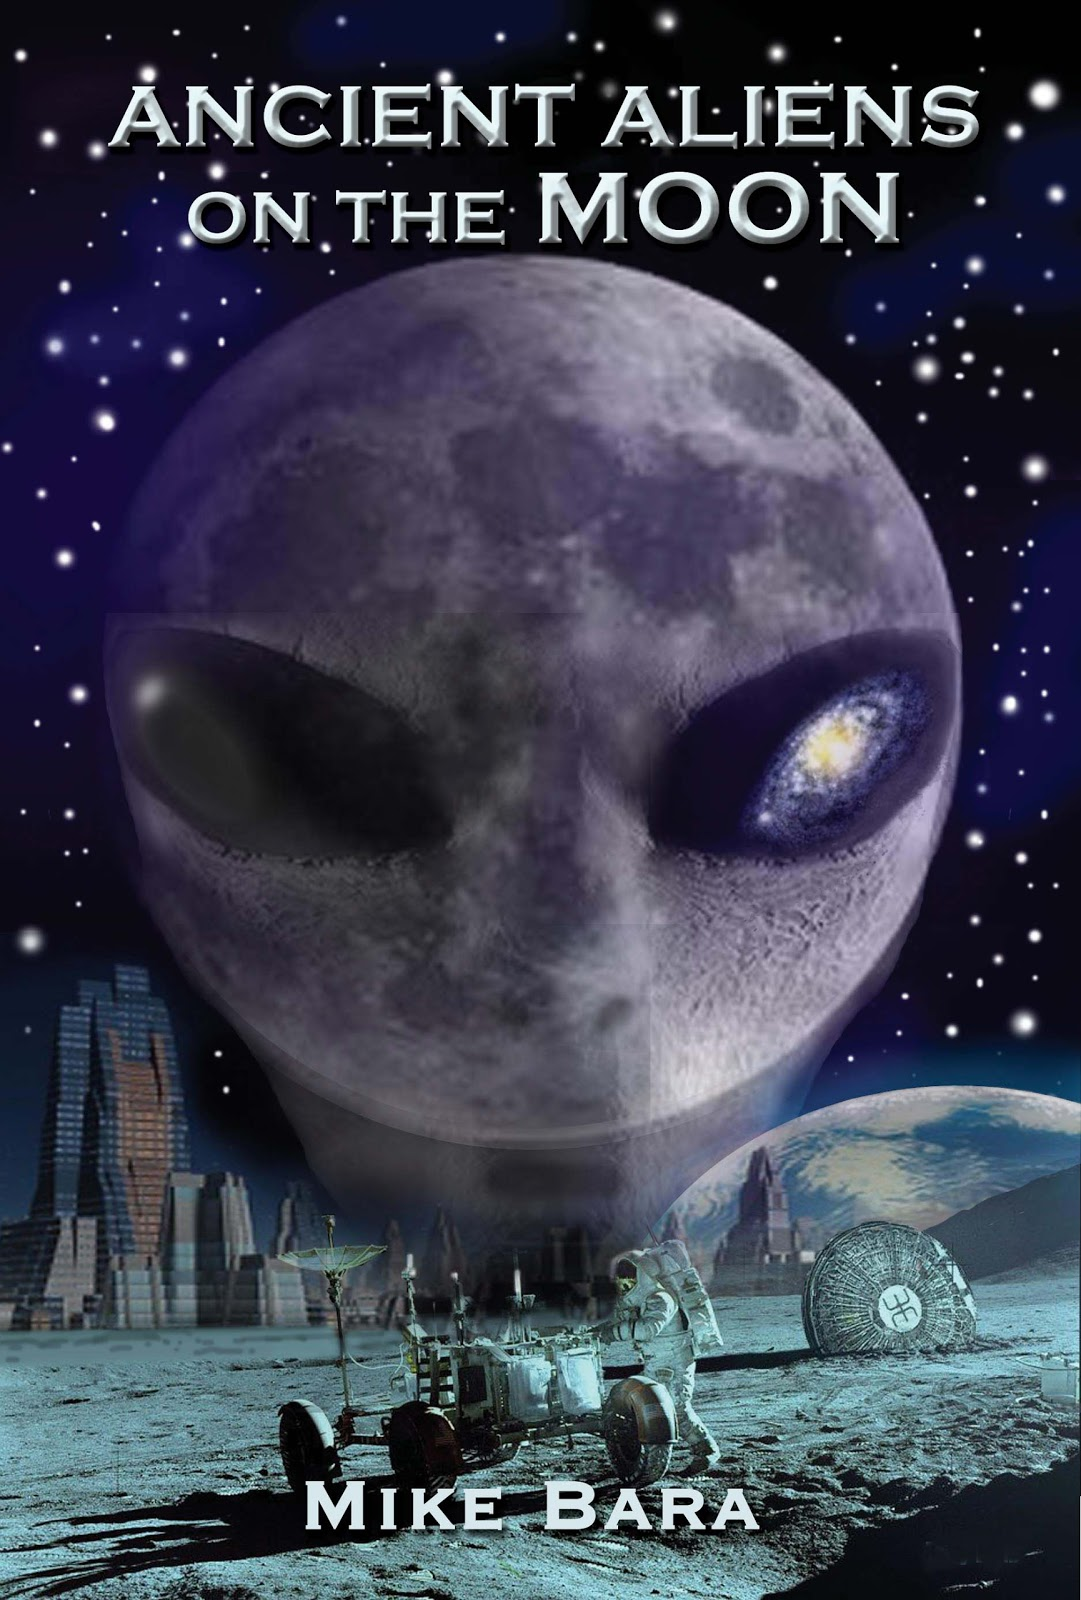 ancient aliens moon landing - photo #20